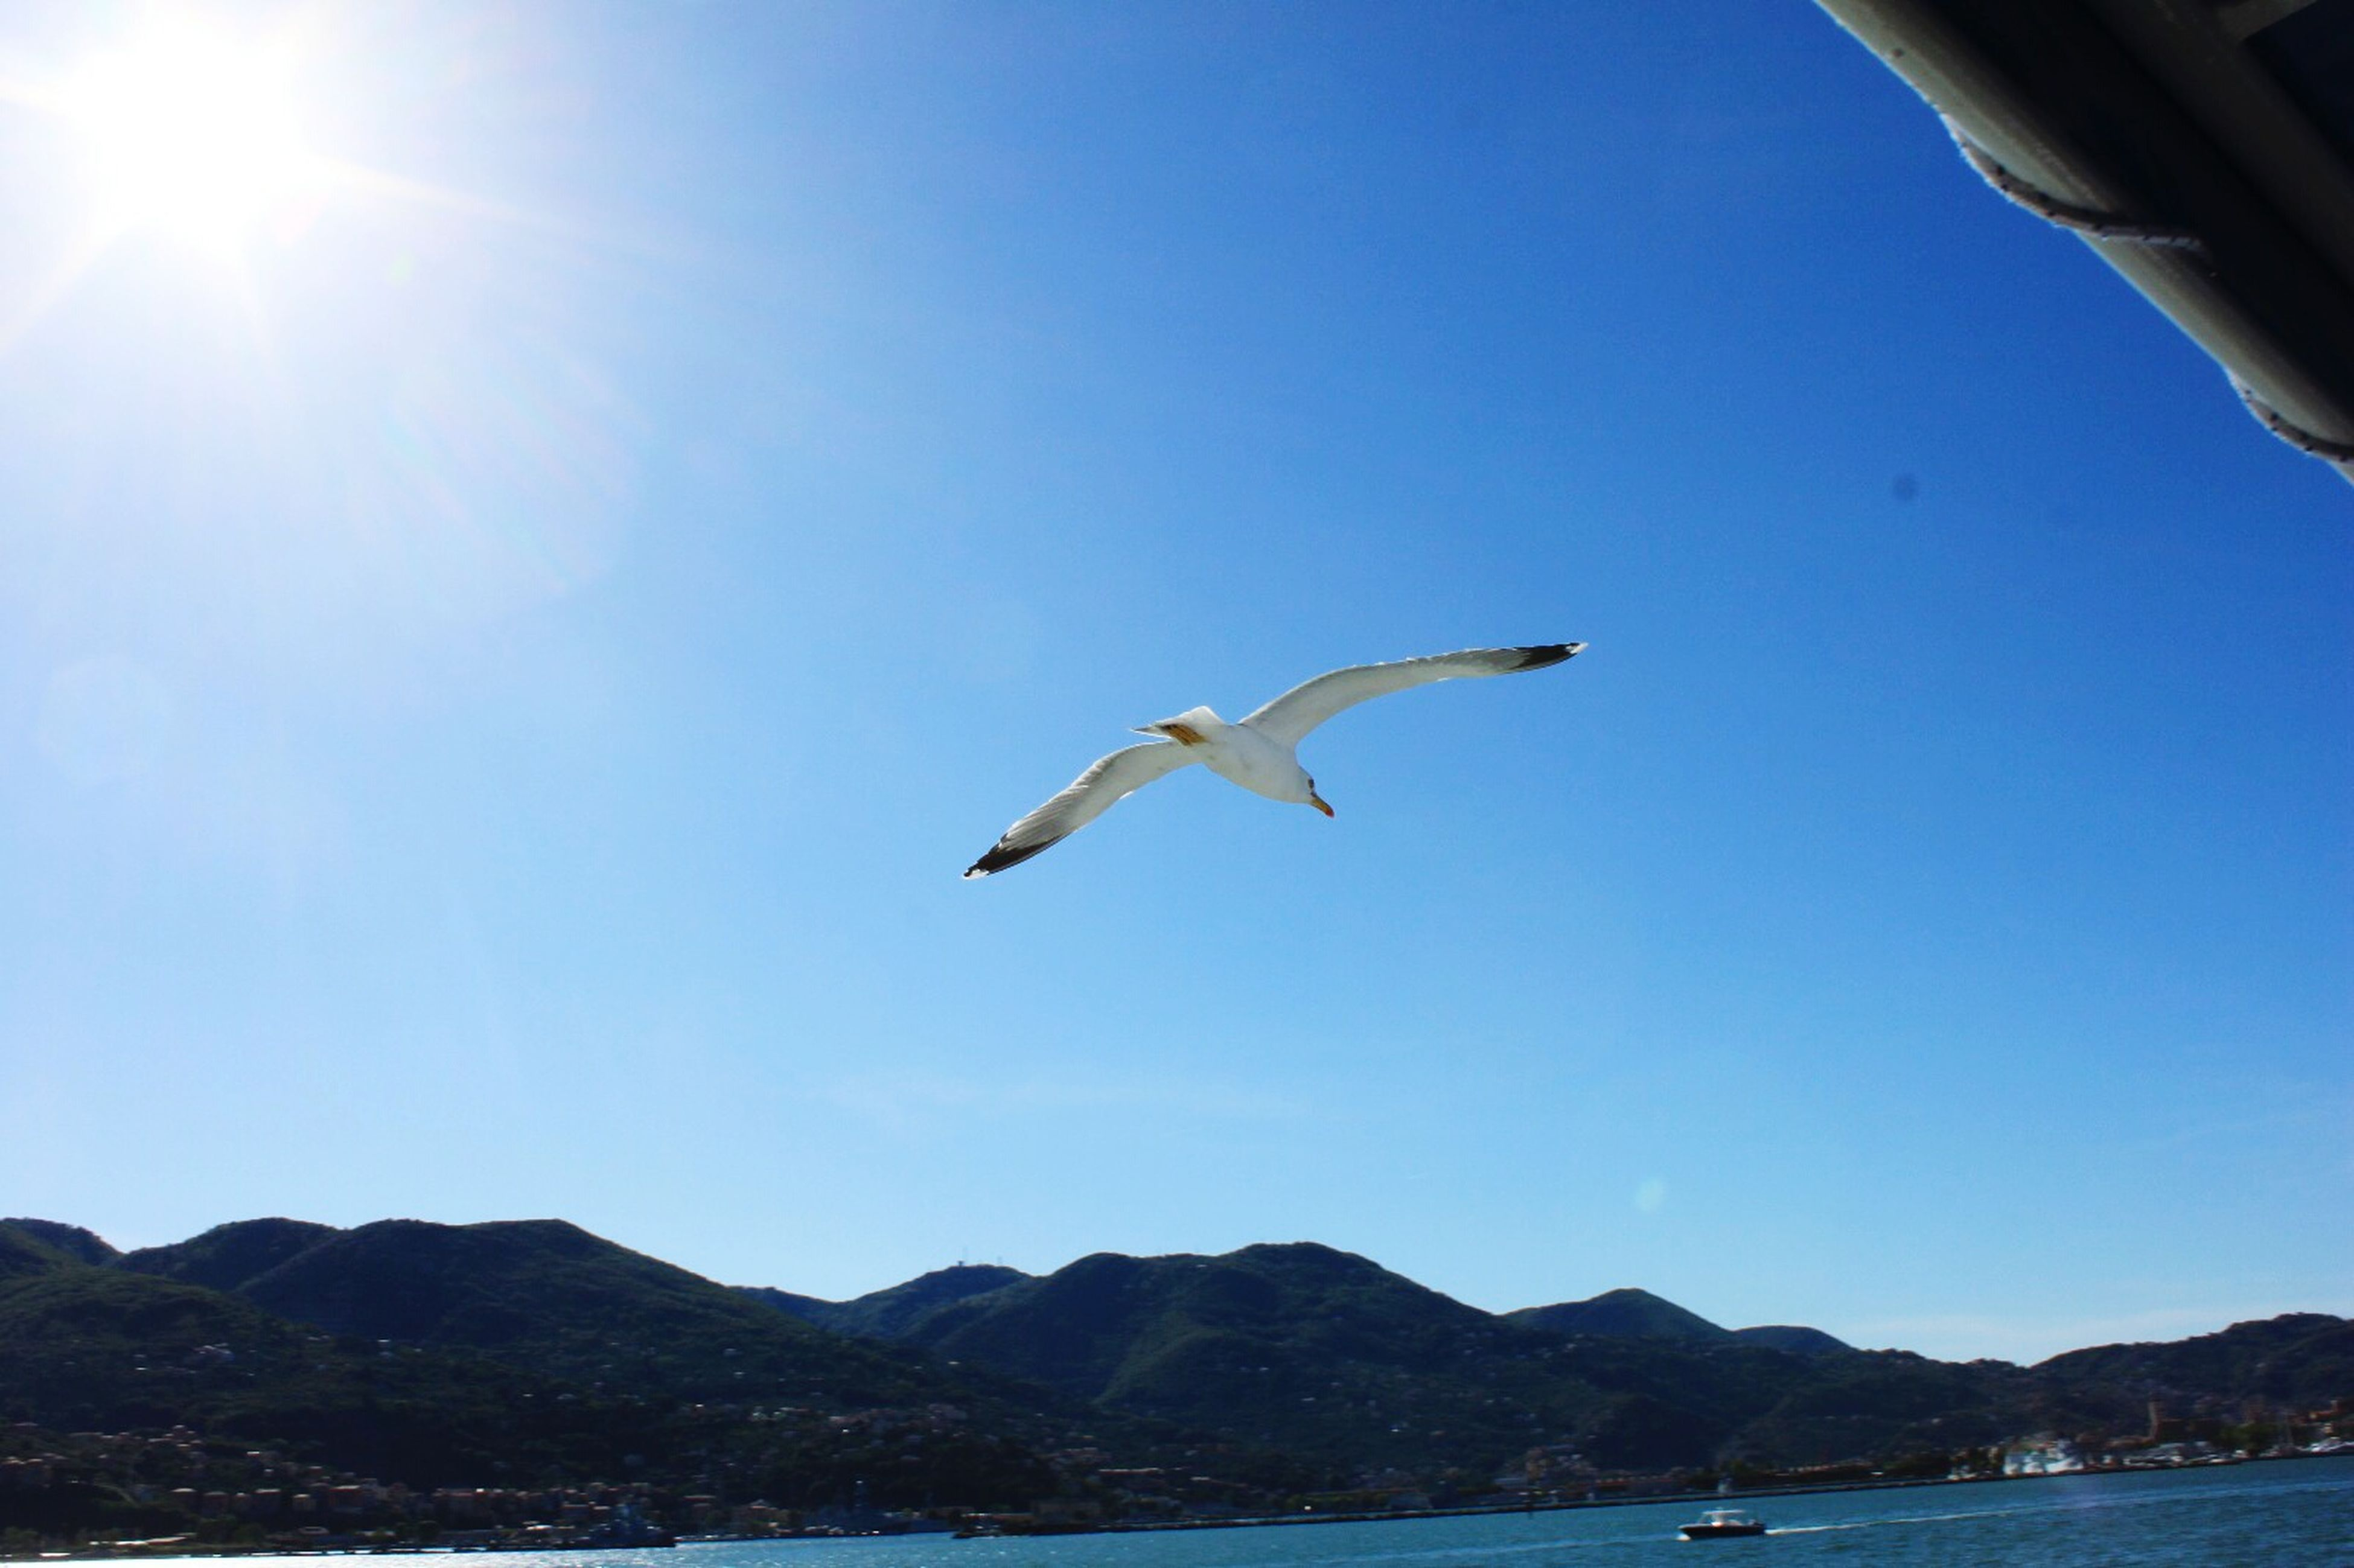 bird, flying, animal themes, animals in the wild, clear sky, water, spread wings, wildlife, mid-air, one animal, seagull, sea, mountain, blue, copy space, nature, mountain range, tranquil scene, beauty in nature, sky